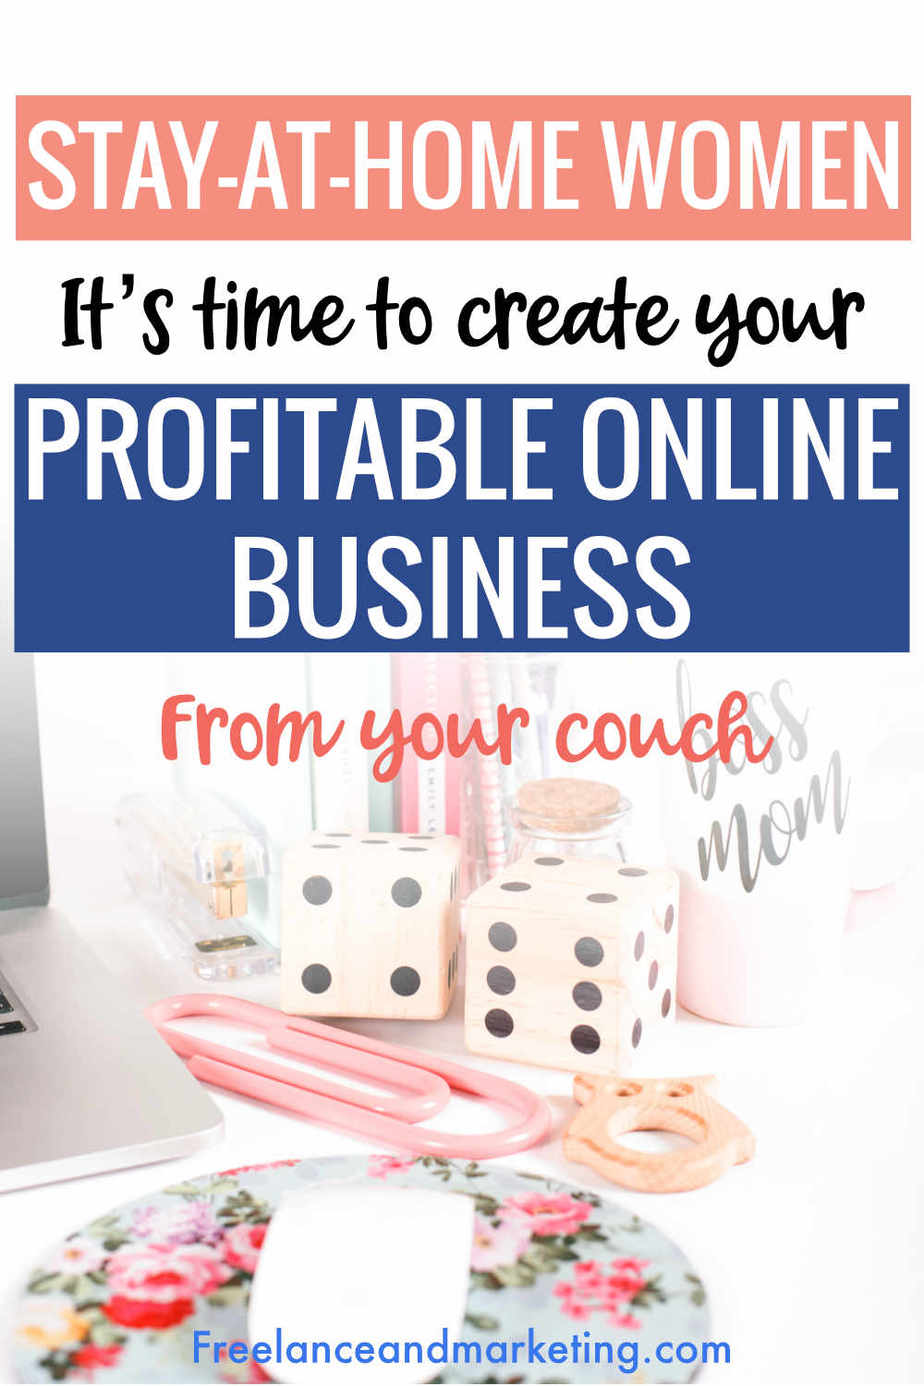 Ideas for how to start business for women. Starting an online business ideas, tips, and opportunities for women. Learn what you need. Business mindset for women to create their profitable online businesses and grow, thrive. #onlinebusiness #womeninbusienss #businessmindset #legalcompliance #startup #digitalbusiness #ecommerce